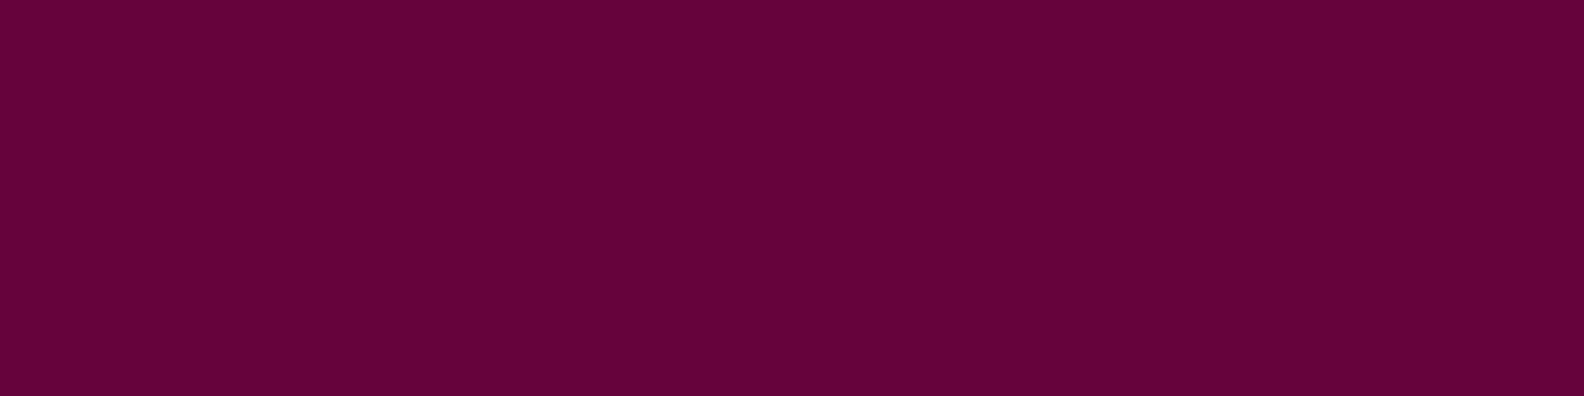 1584x396 Tyrian Purple Solid Color Background